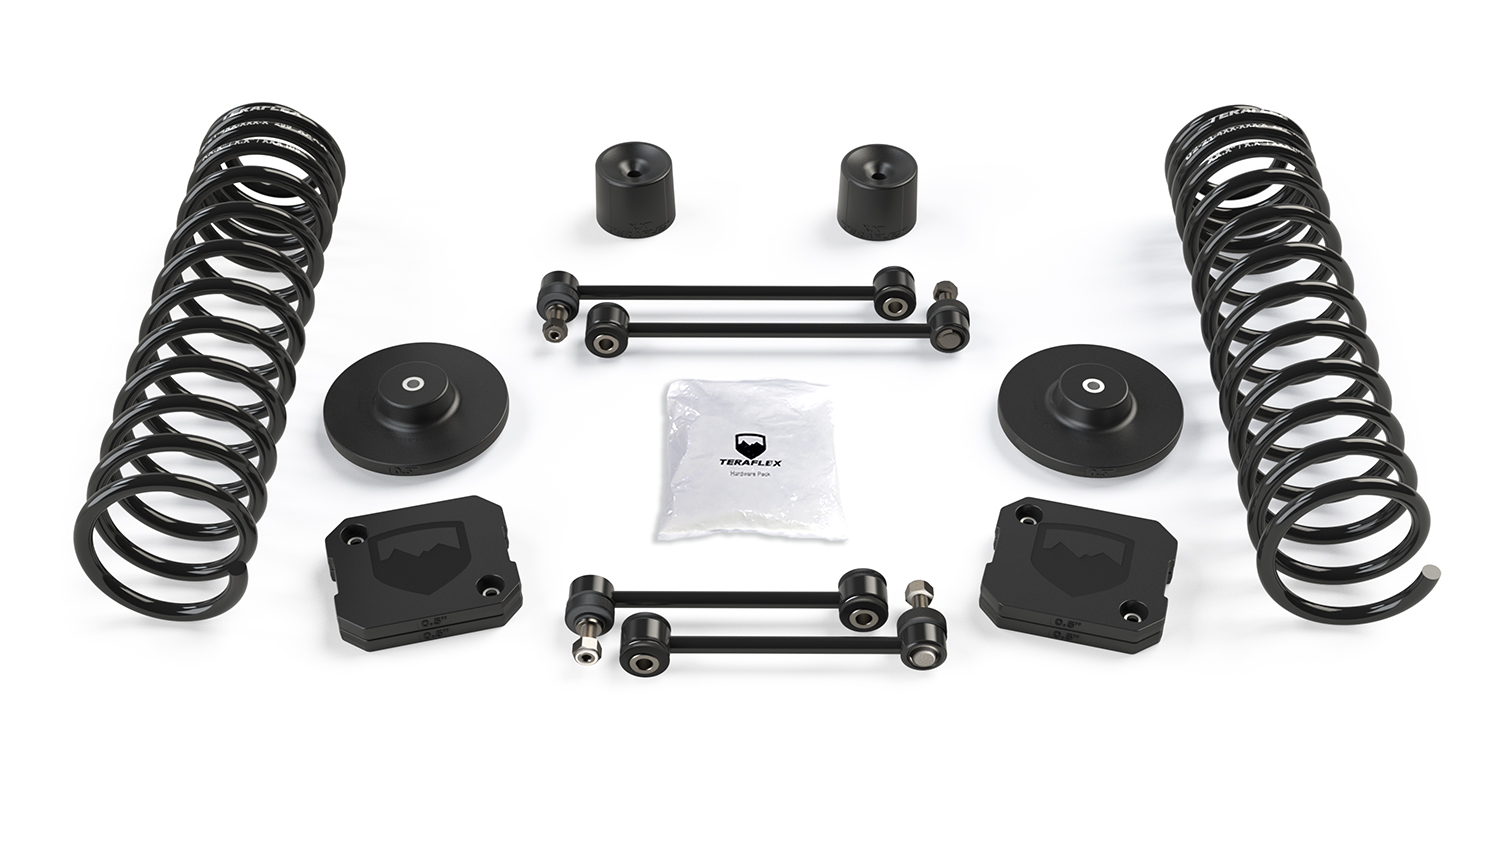 Teraflex 2.5in Coil Spring & Spacer Lift Kit - No Shocks